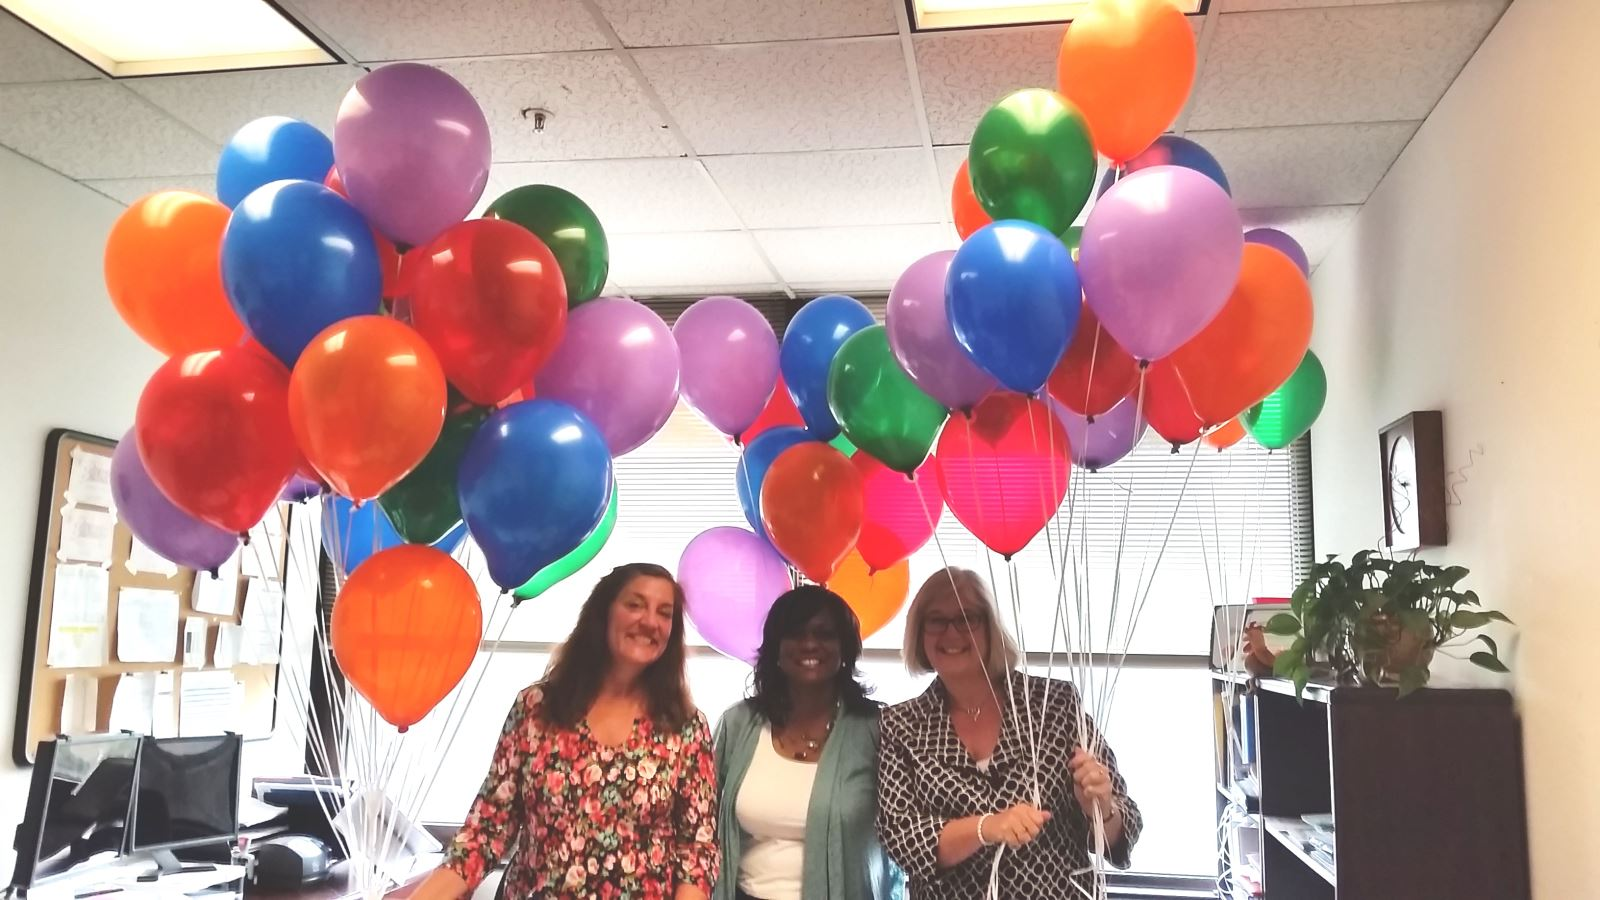 Three women holding balloons.